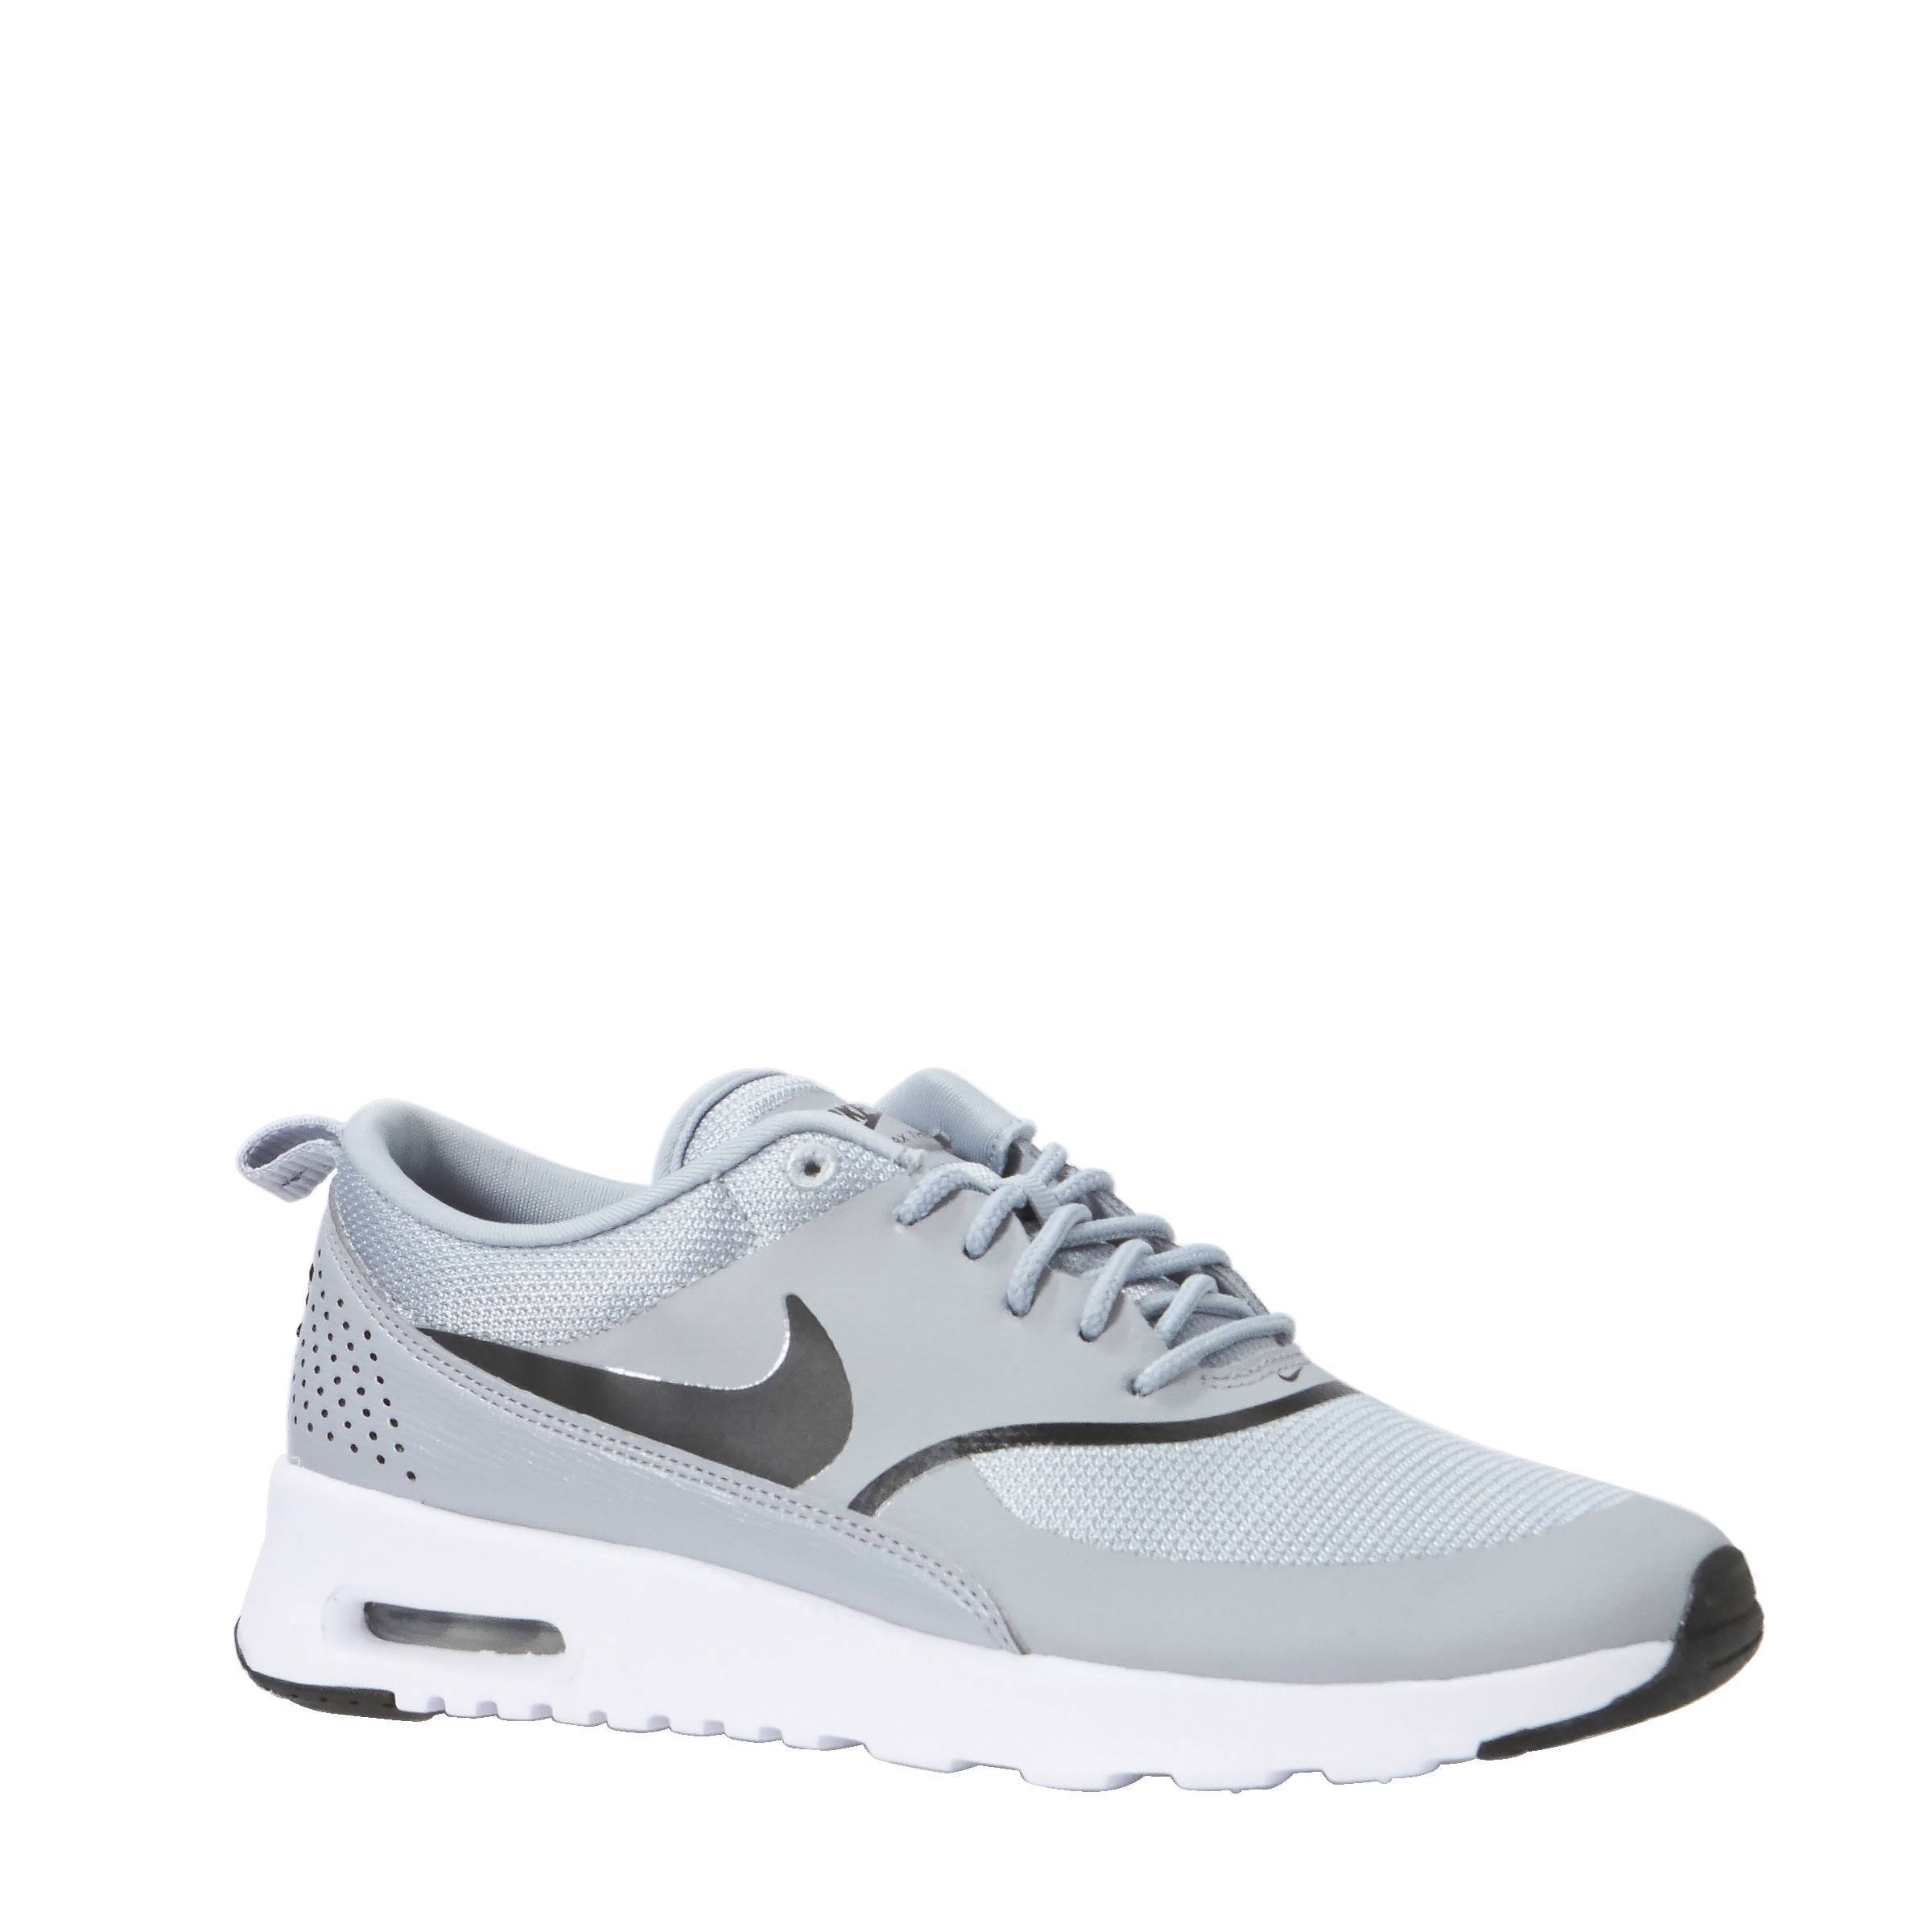 nike air max thea grijs wit